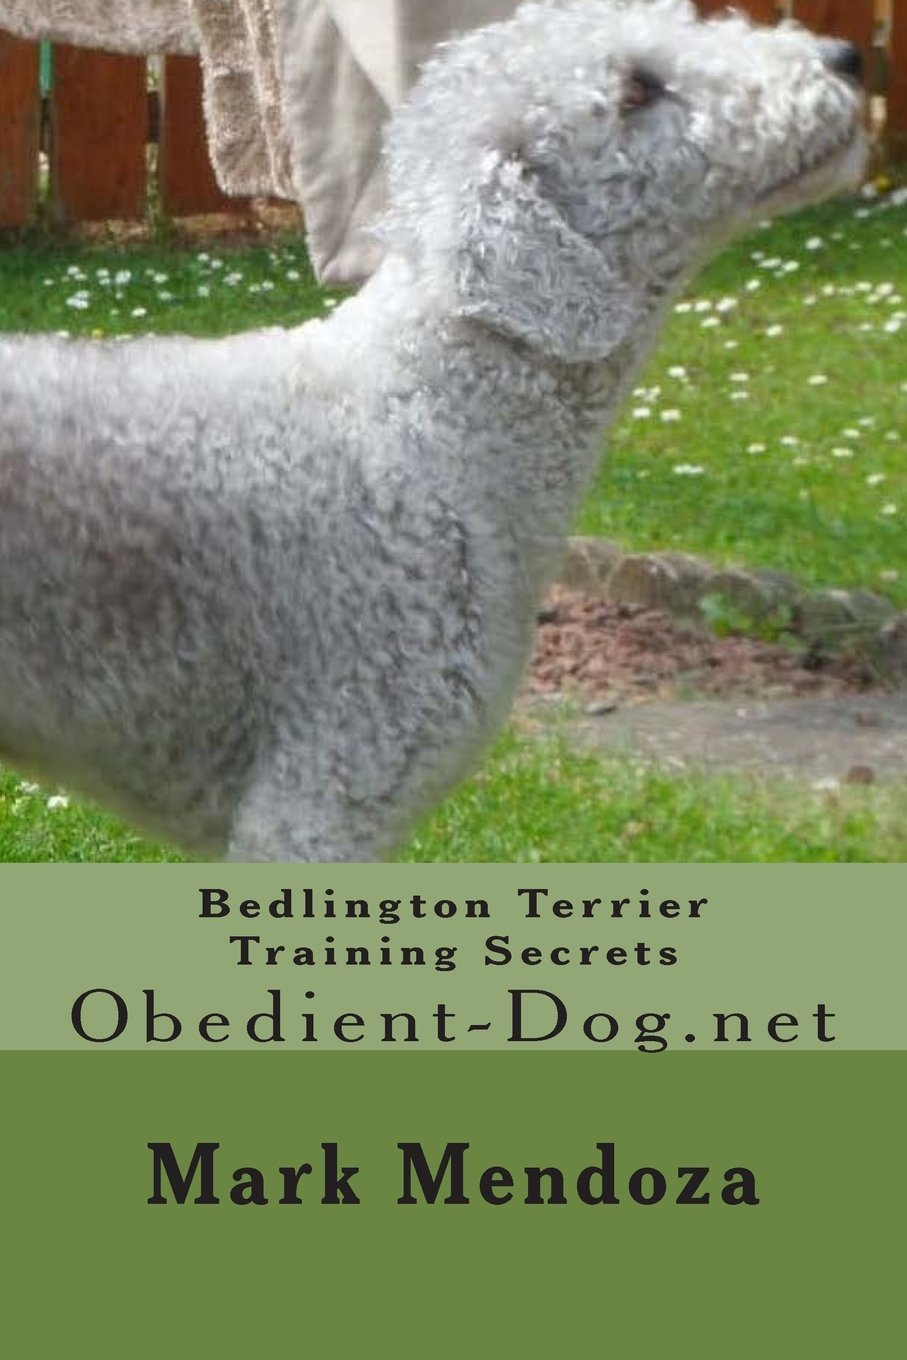 Bedlington Terrier Training Secrets: Obedient-Dog.net